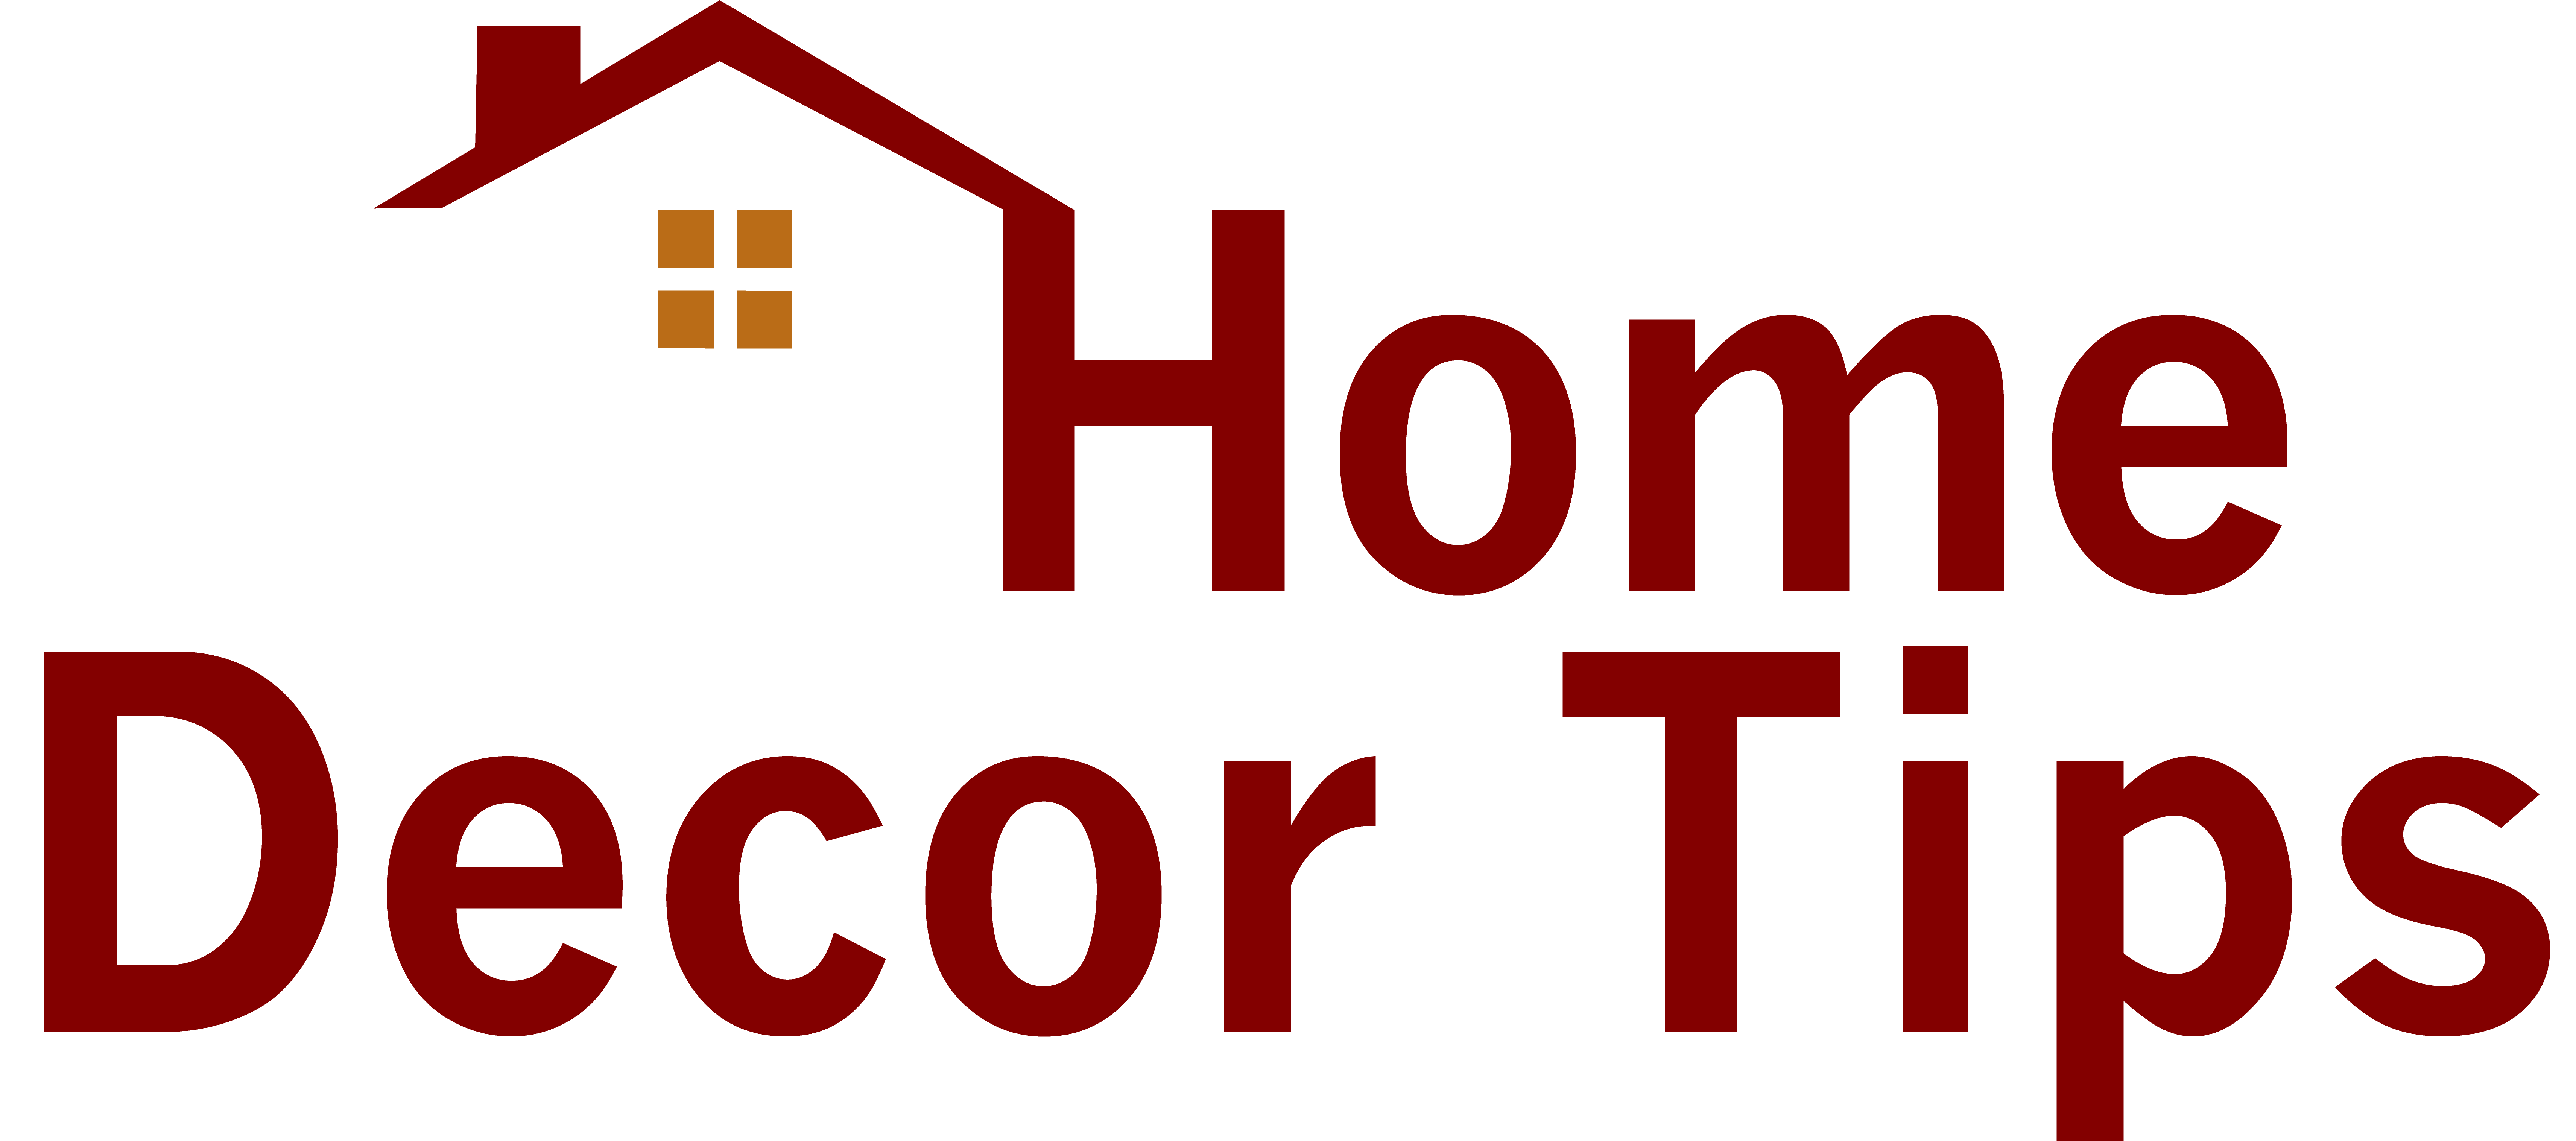 homedecortips.co.uk logo